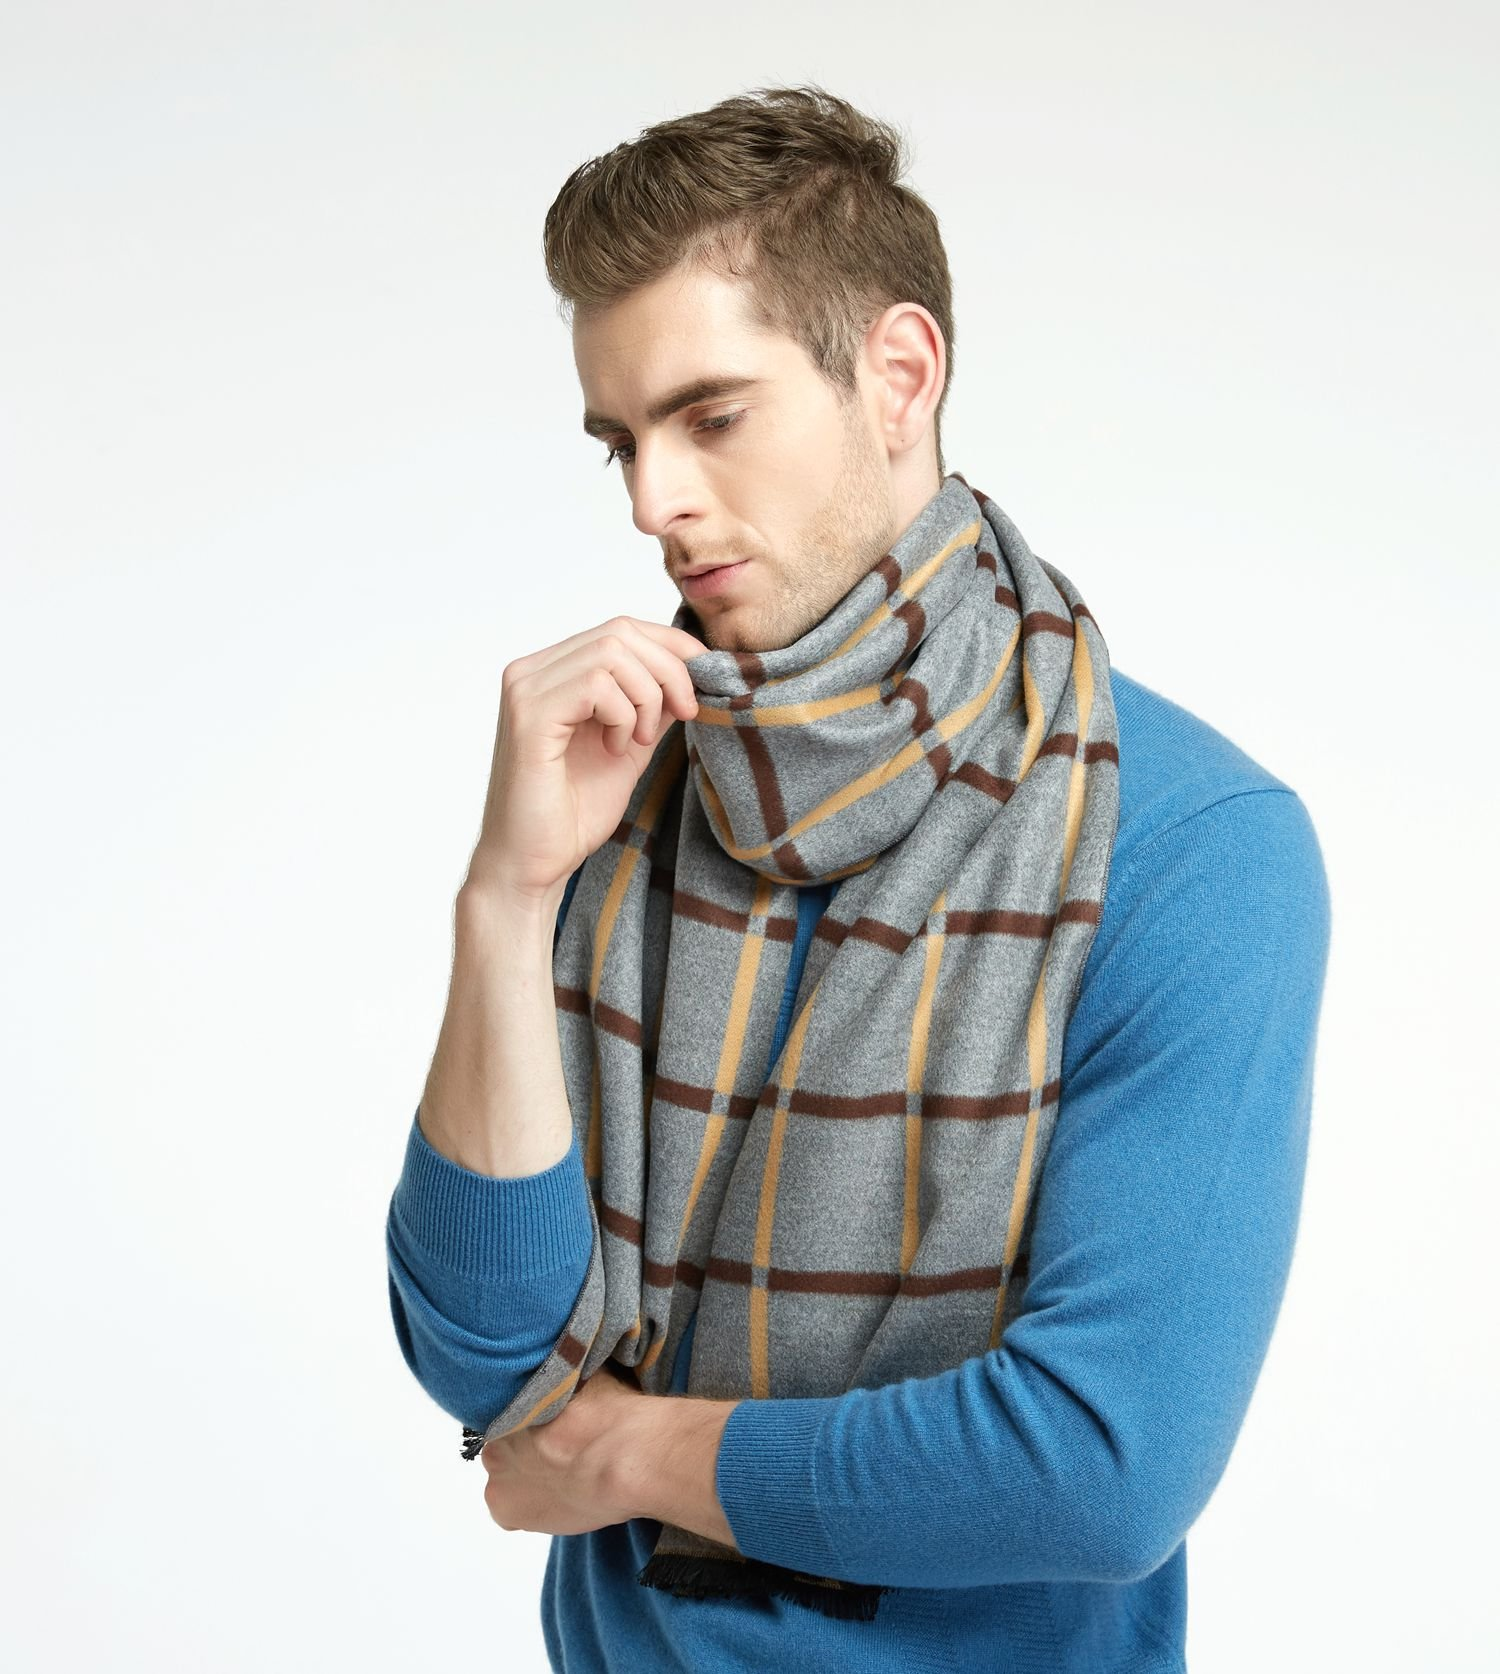 CHTIE Brushed Warm Soft Cashmere Feel Men\'s Scarf Winter (Beige Square)